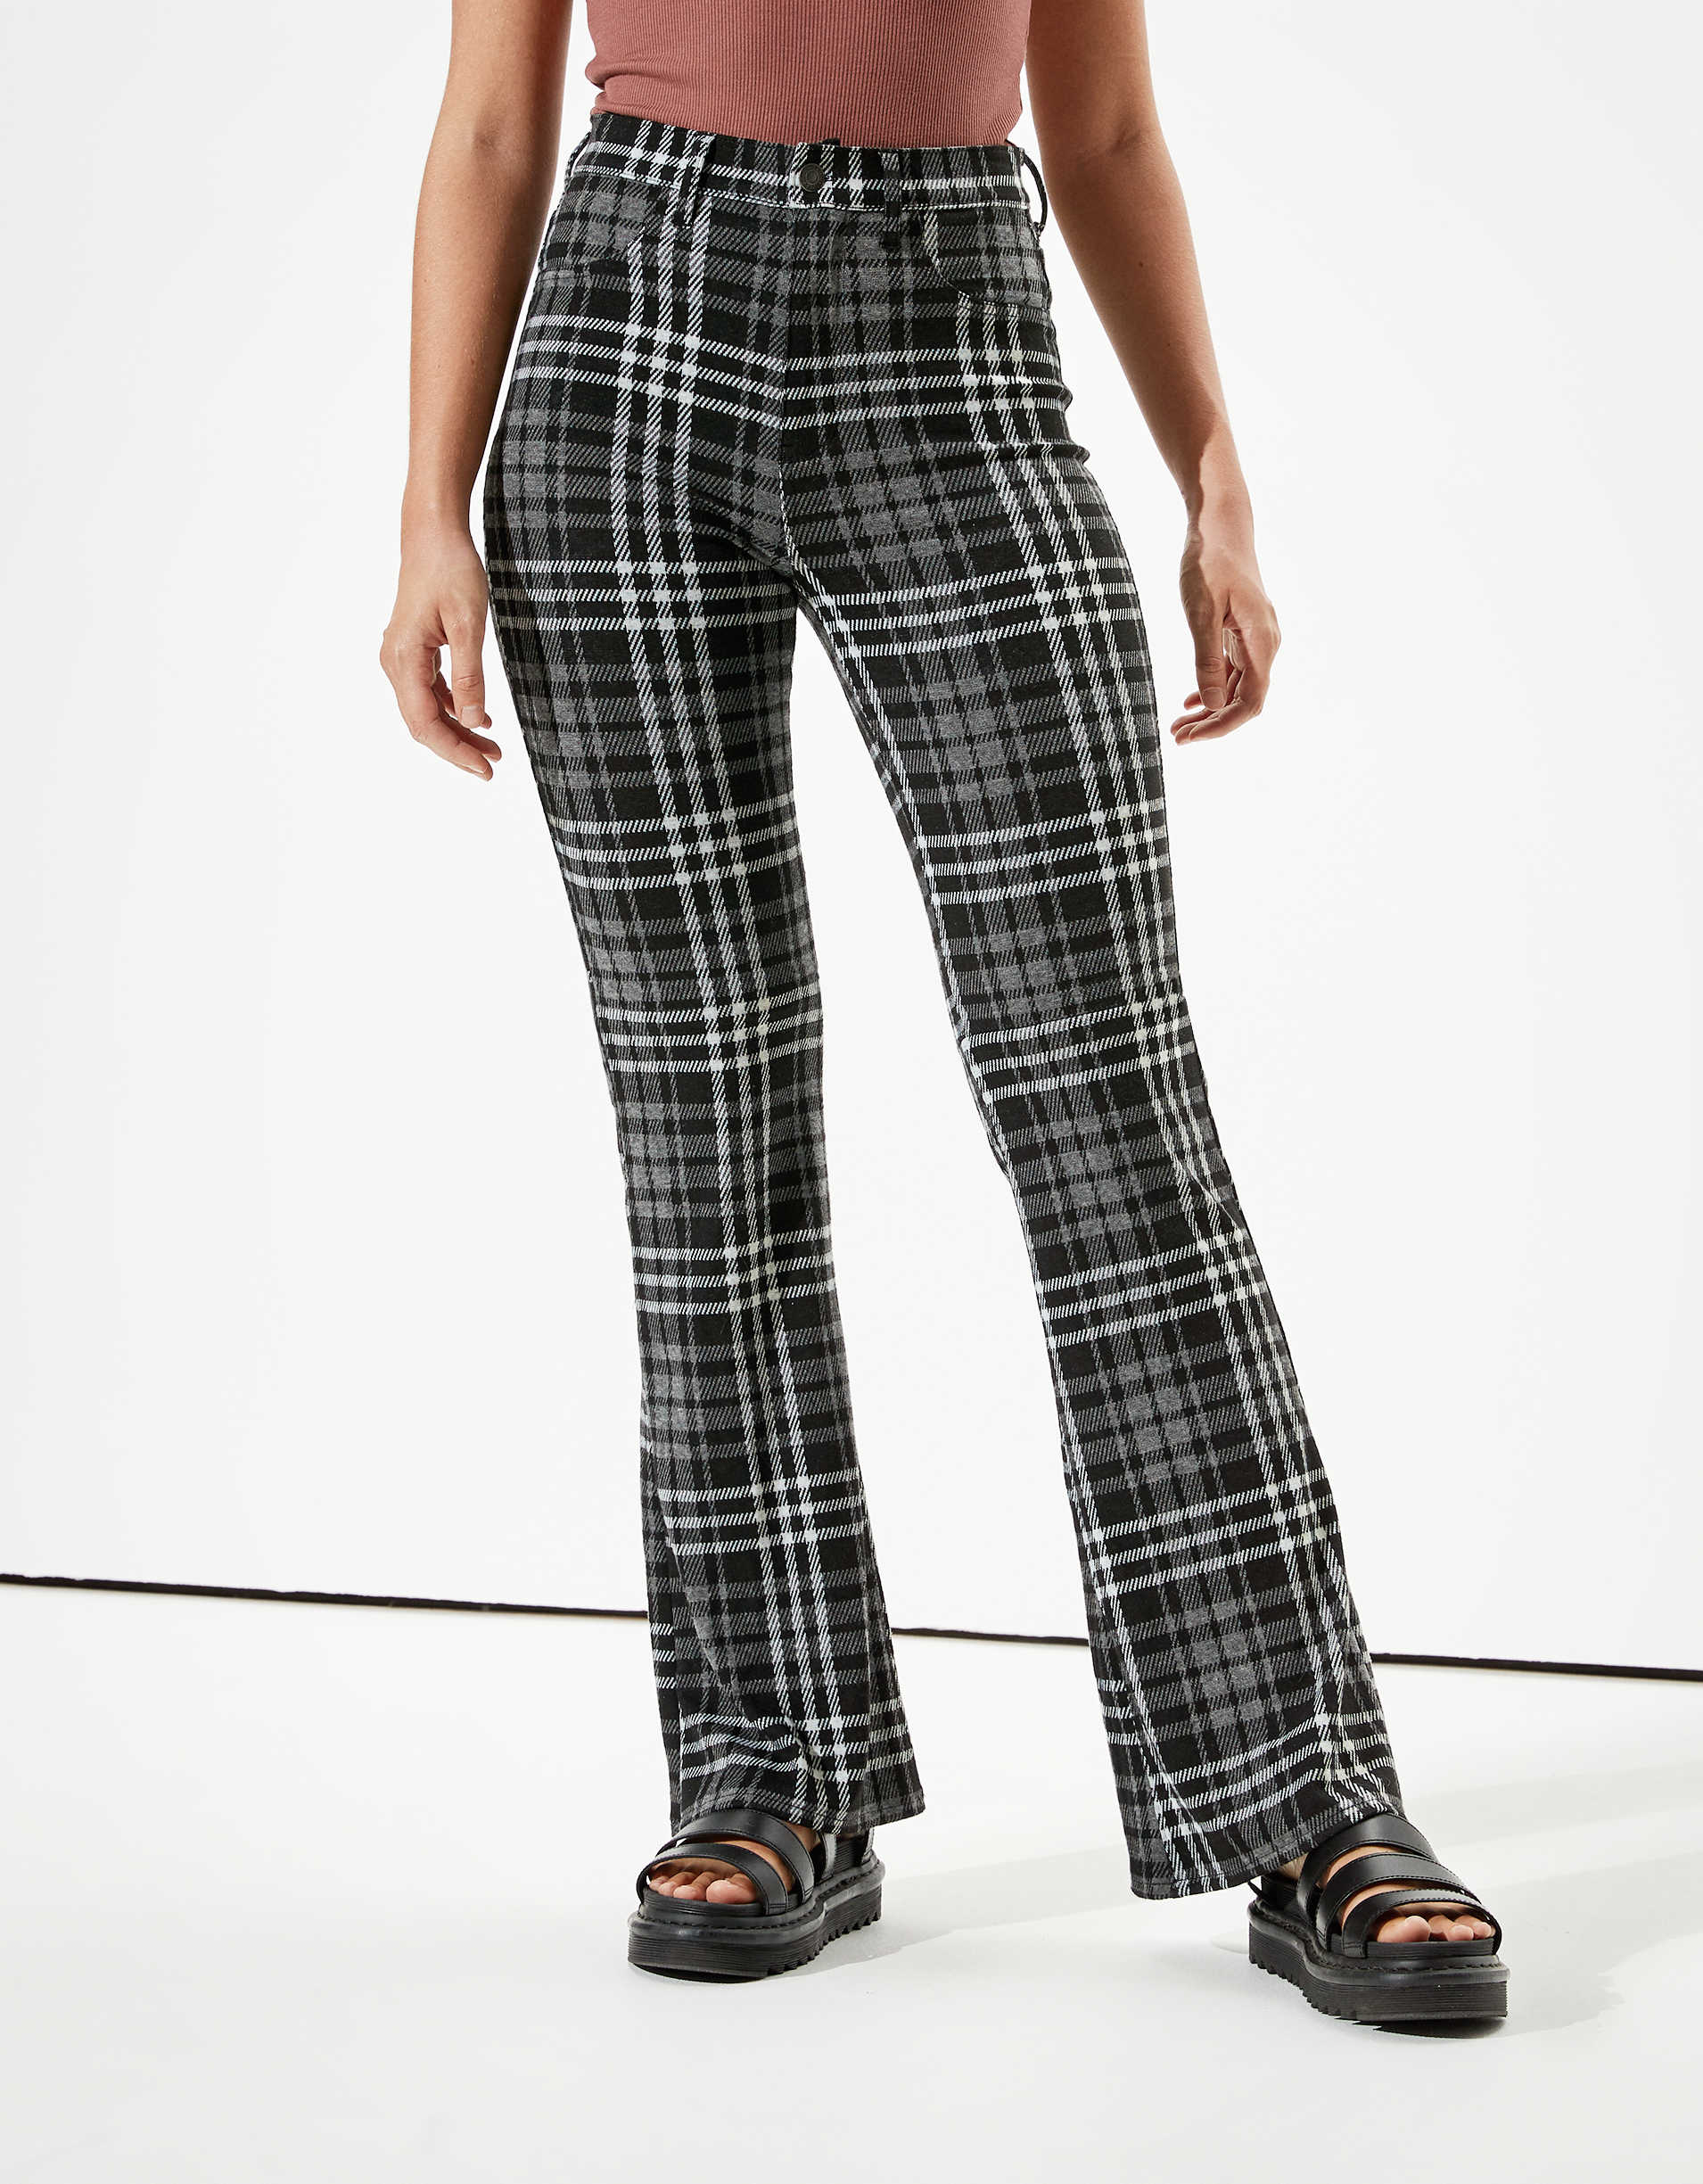 AE Super High-Waisted Flare Pant